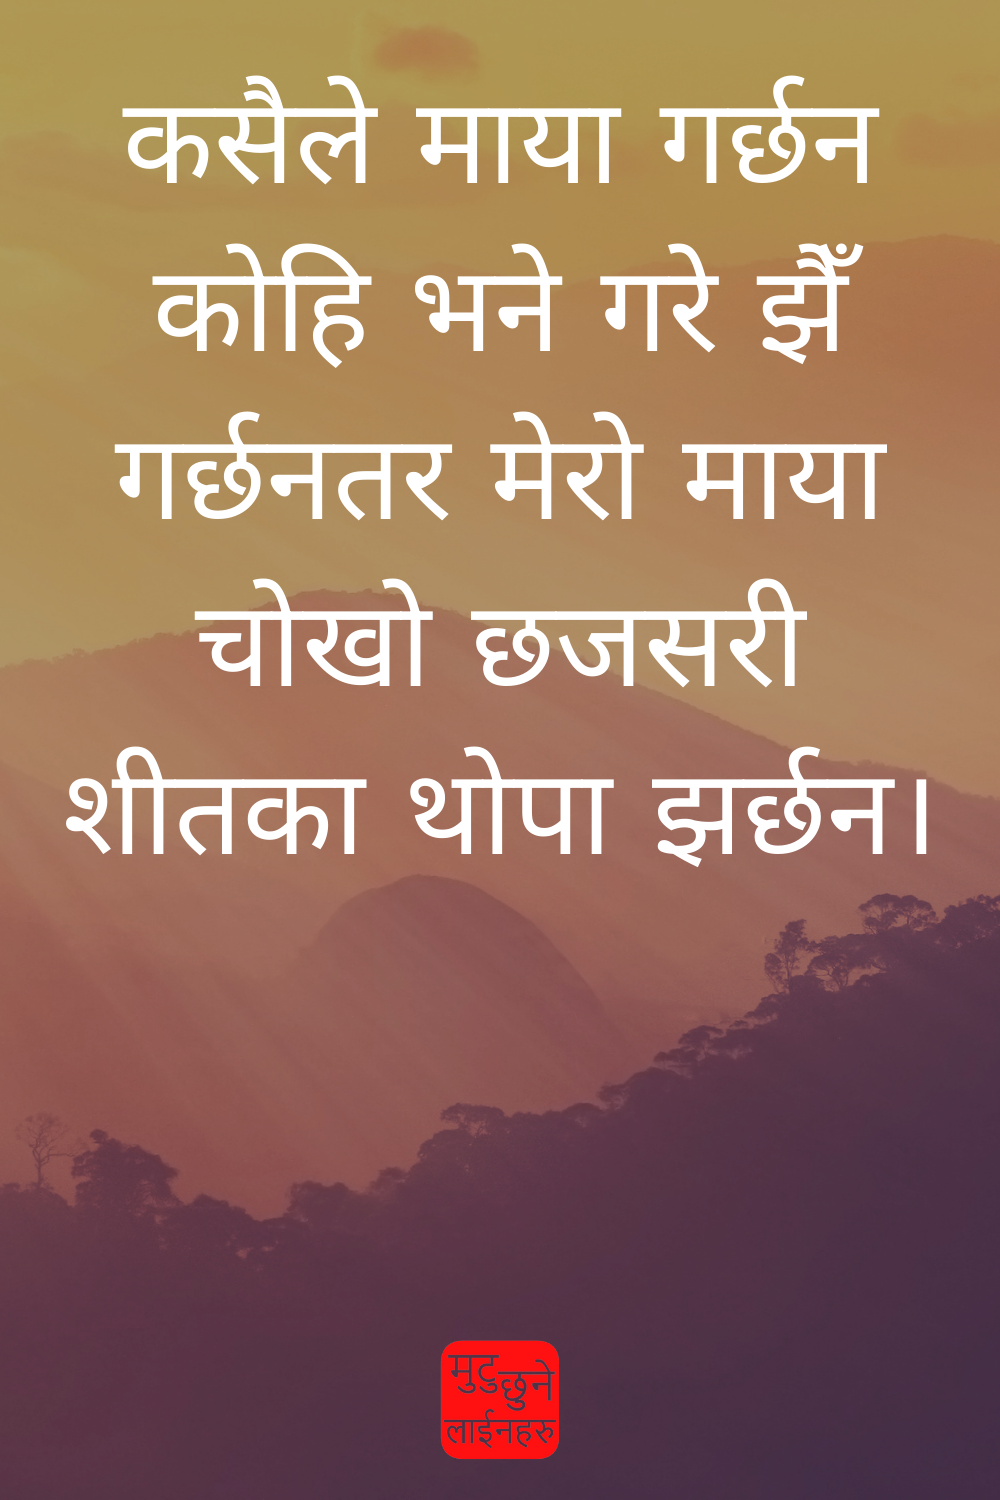 Nepali Status For Smile In 2021 Meaningful Quotes About Life Funny Whatsapp Status Life Status